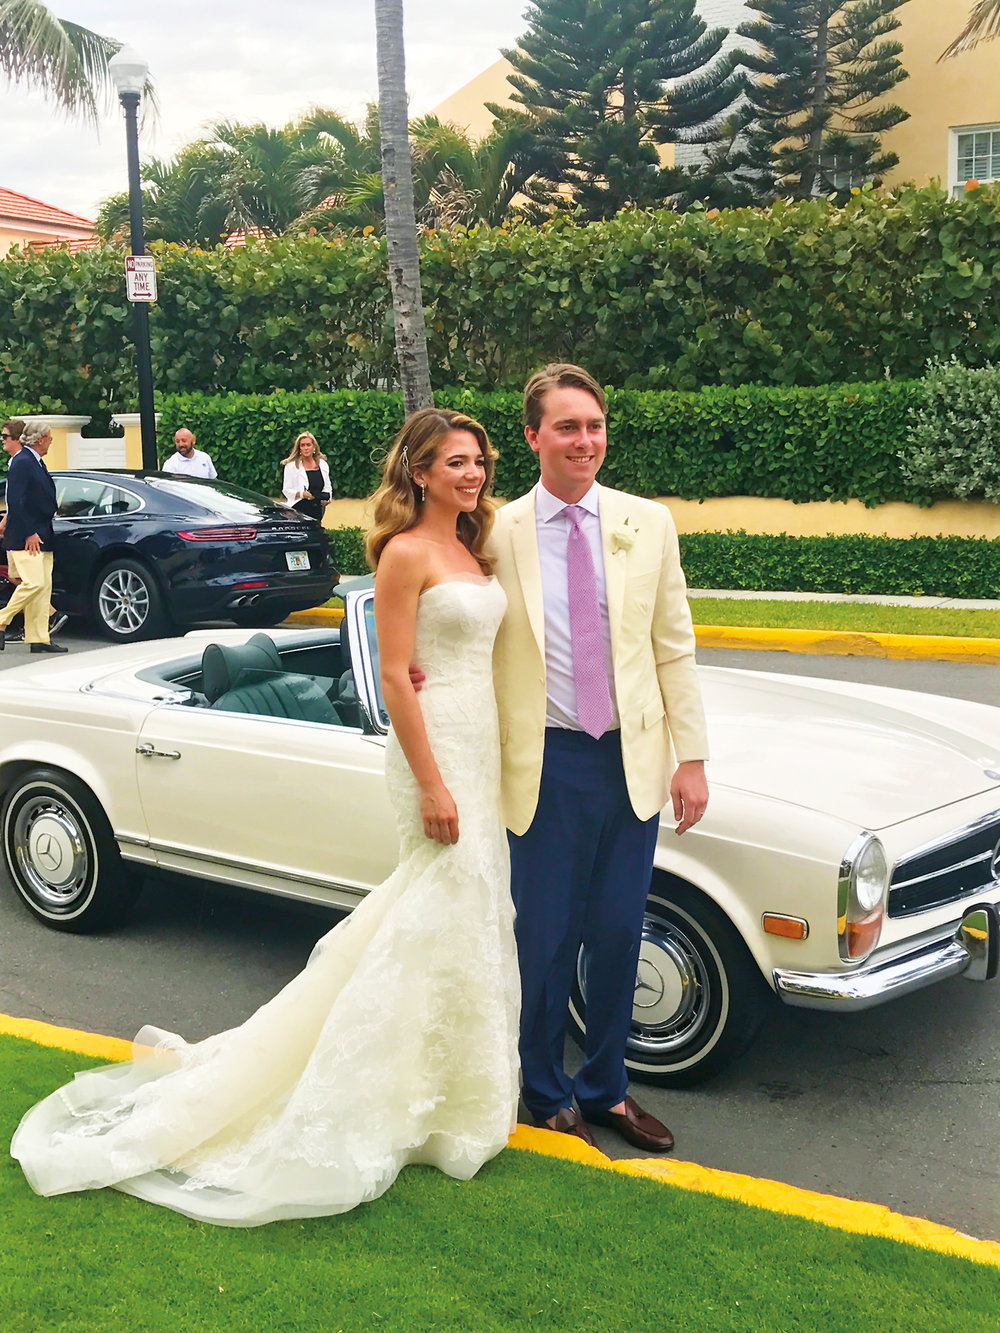 Charlotte Ross '06 with her husband, Alex Canet, at their wedding in Palm Beach, Fla.